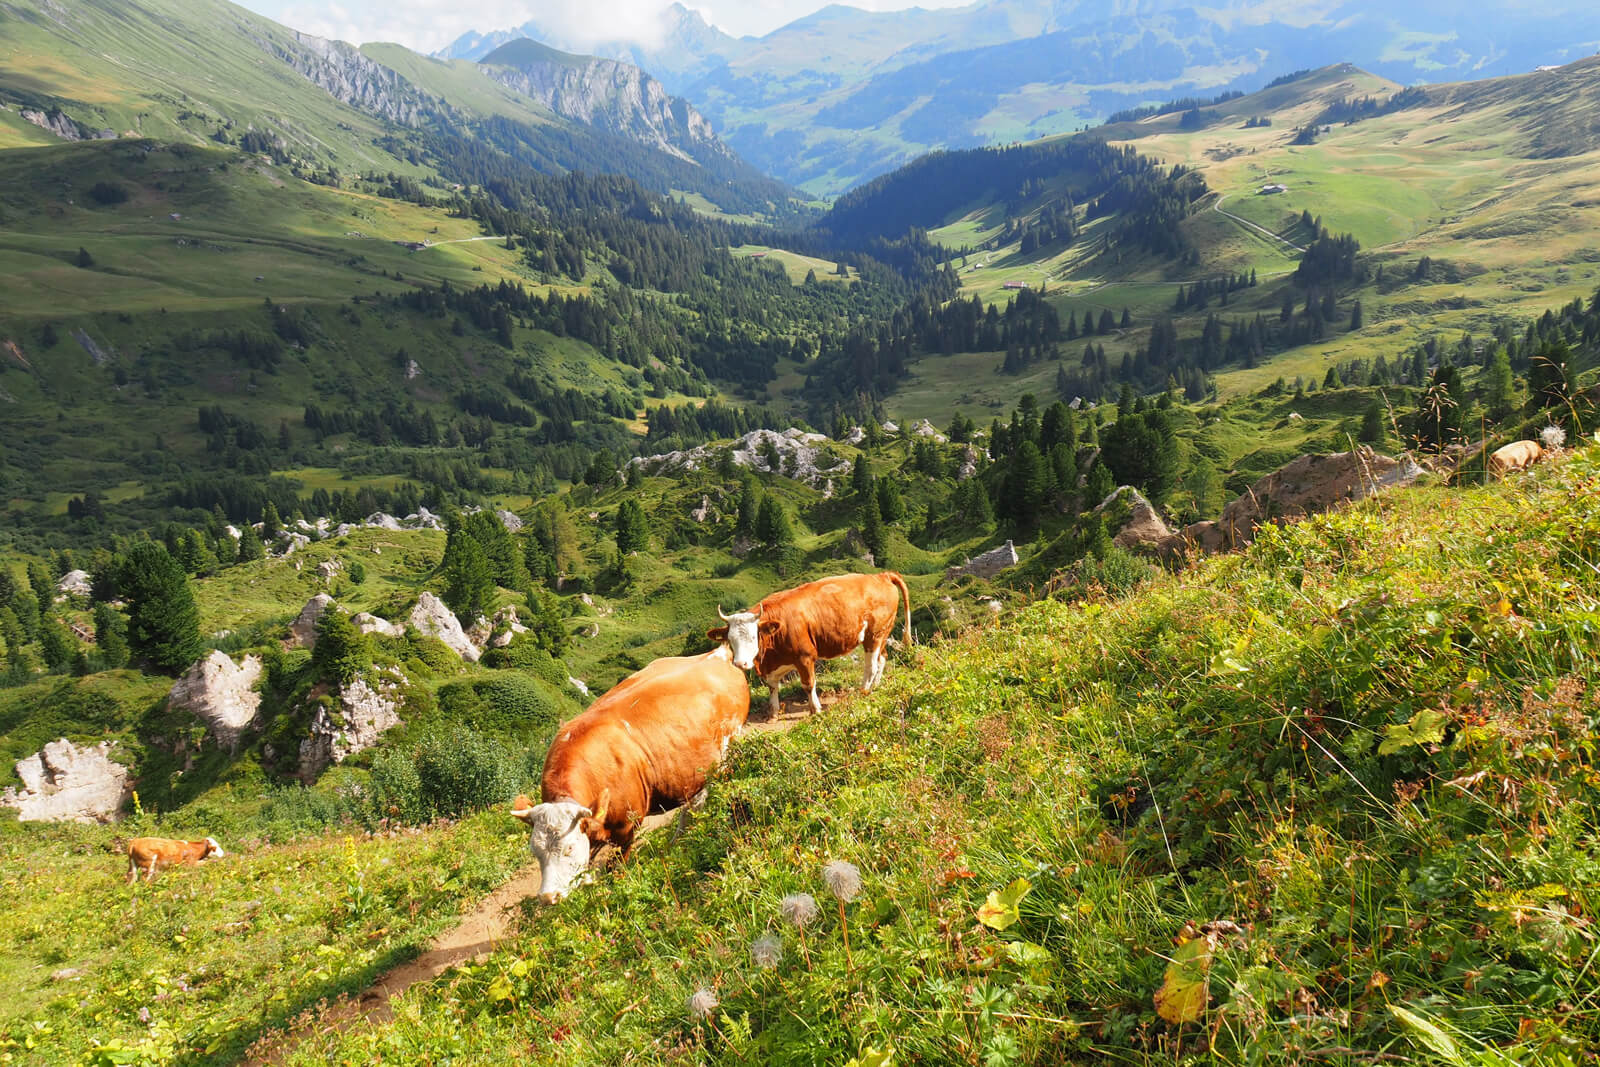 Cows along the Panoramic Hike to Iffigenalp in Lenk-Simmental